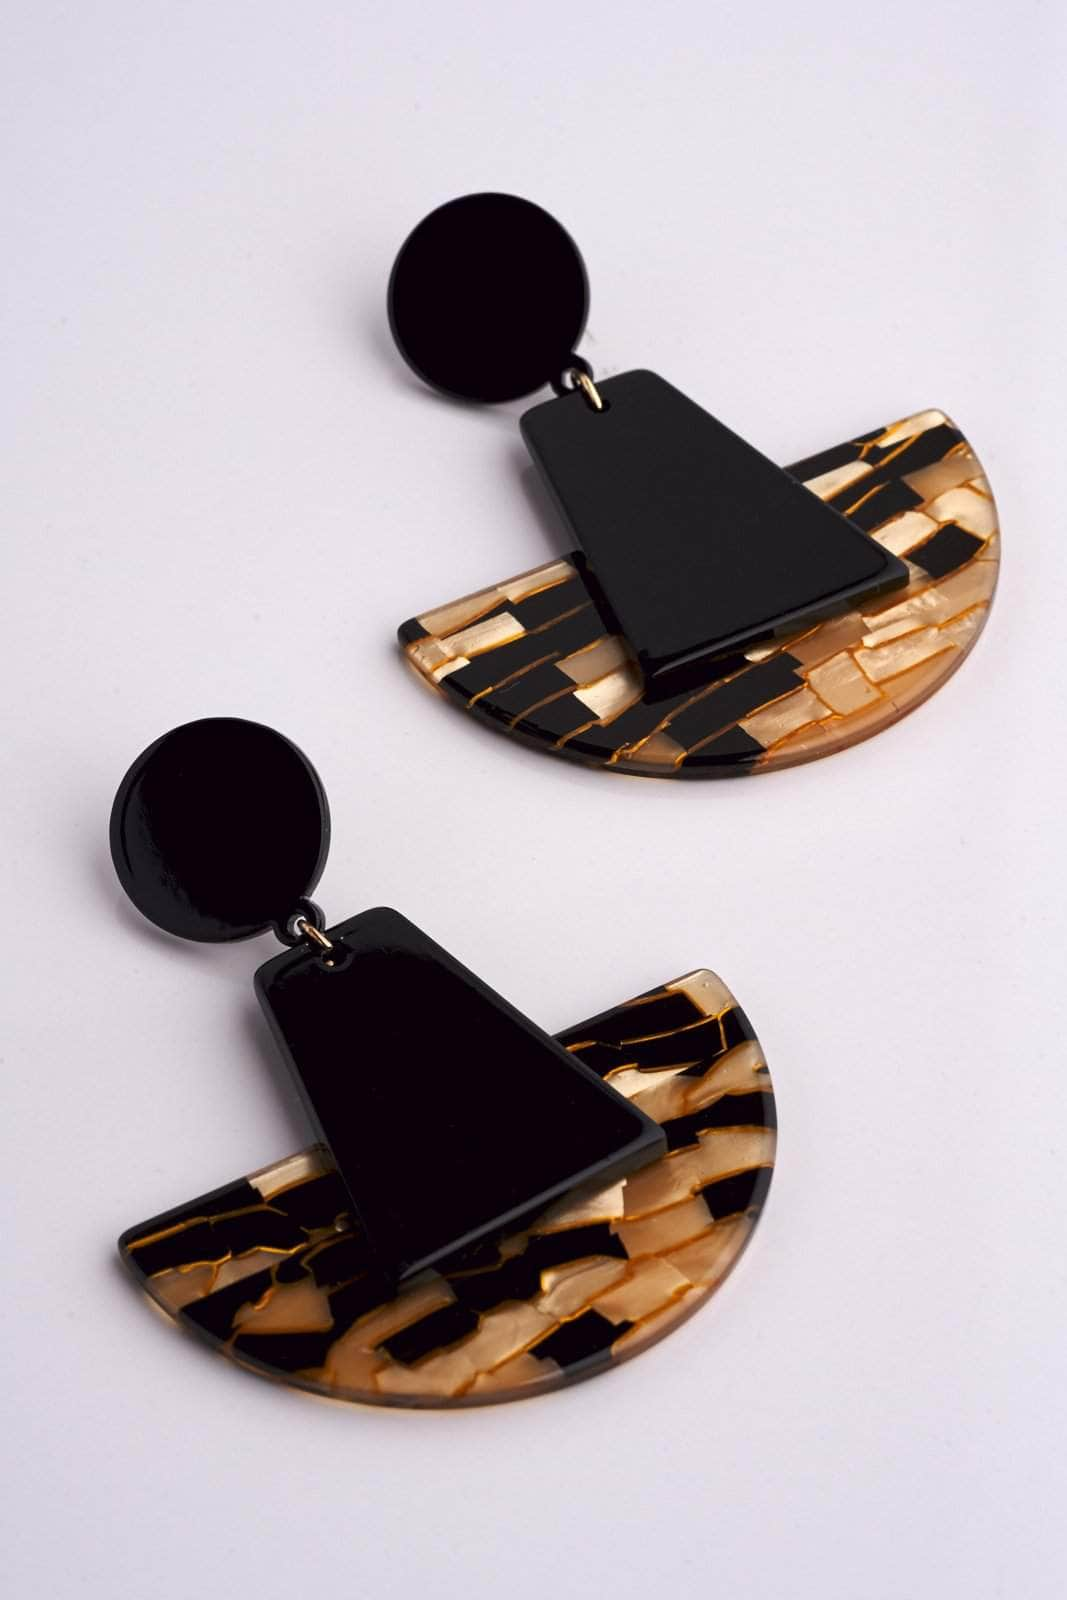 Black Patterned Earrings